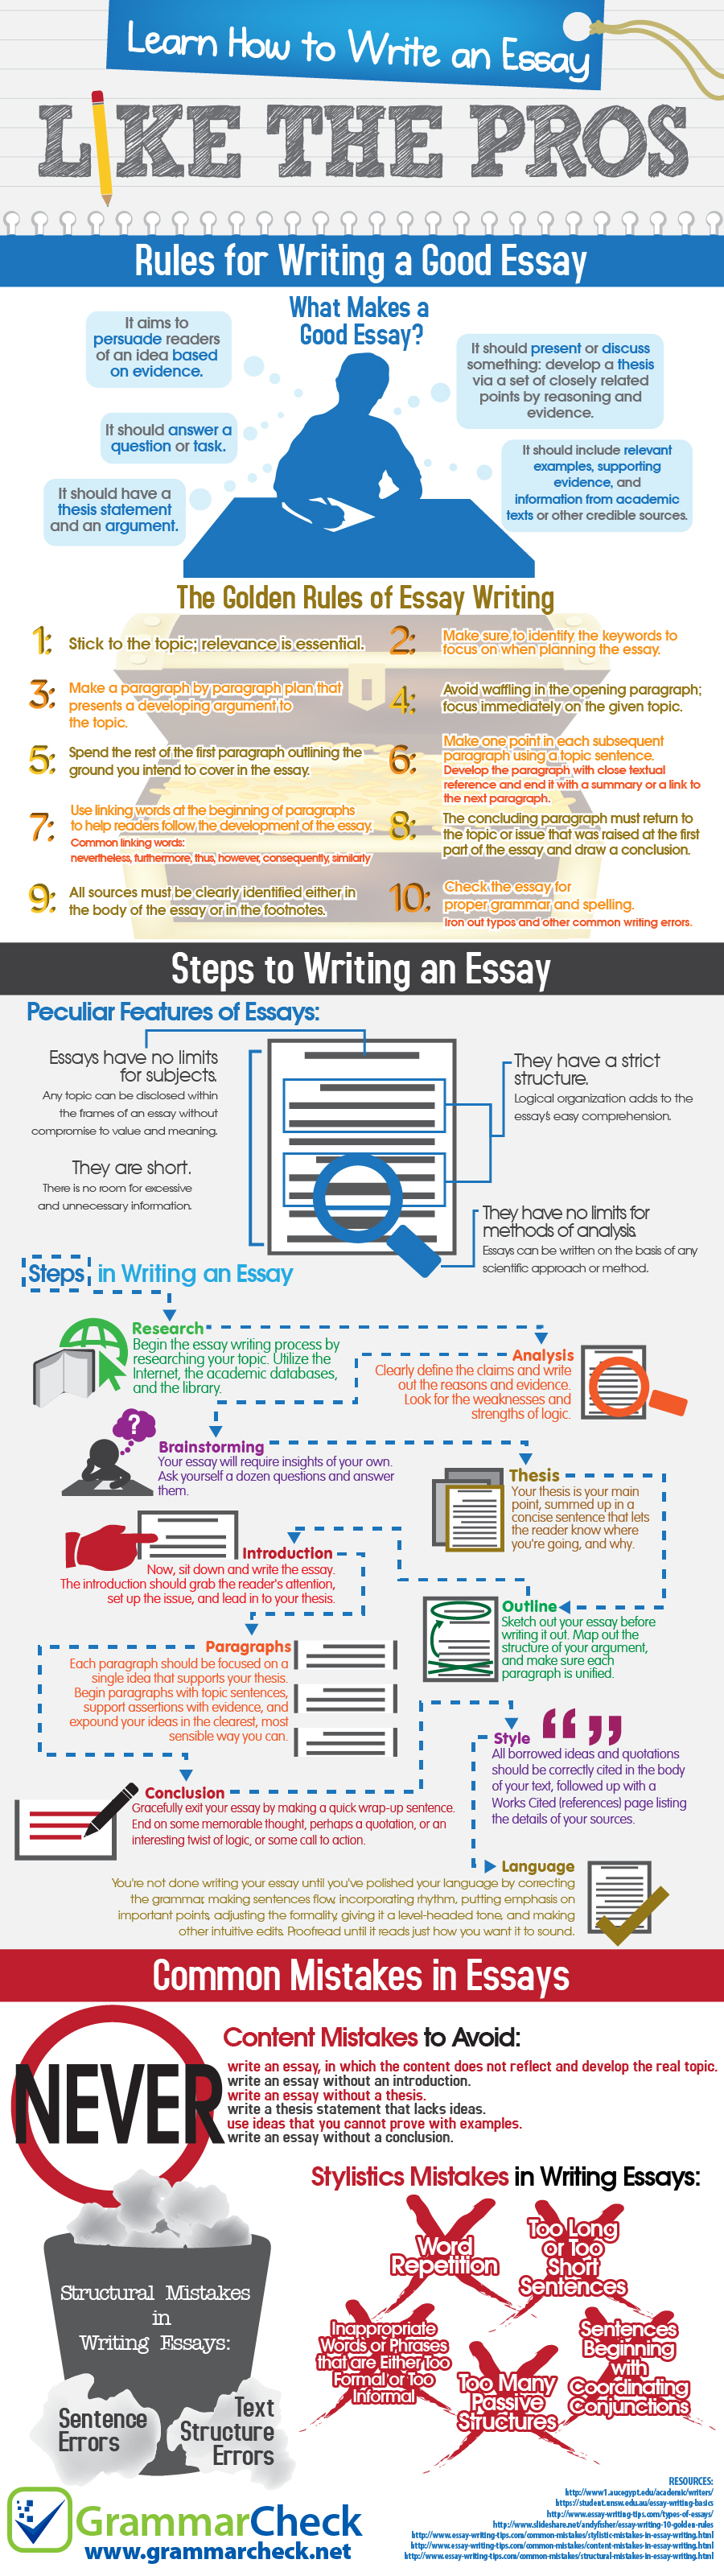 How to write an effective college essay